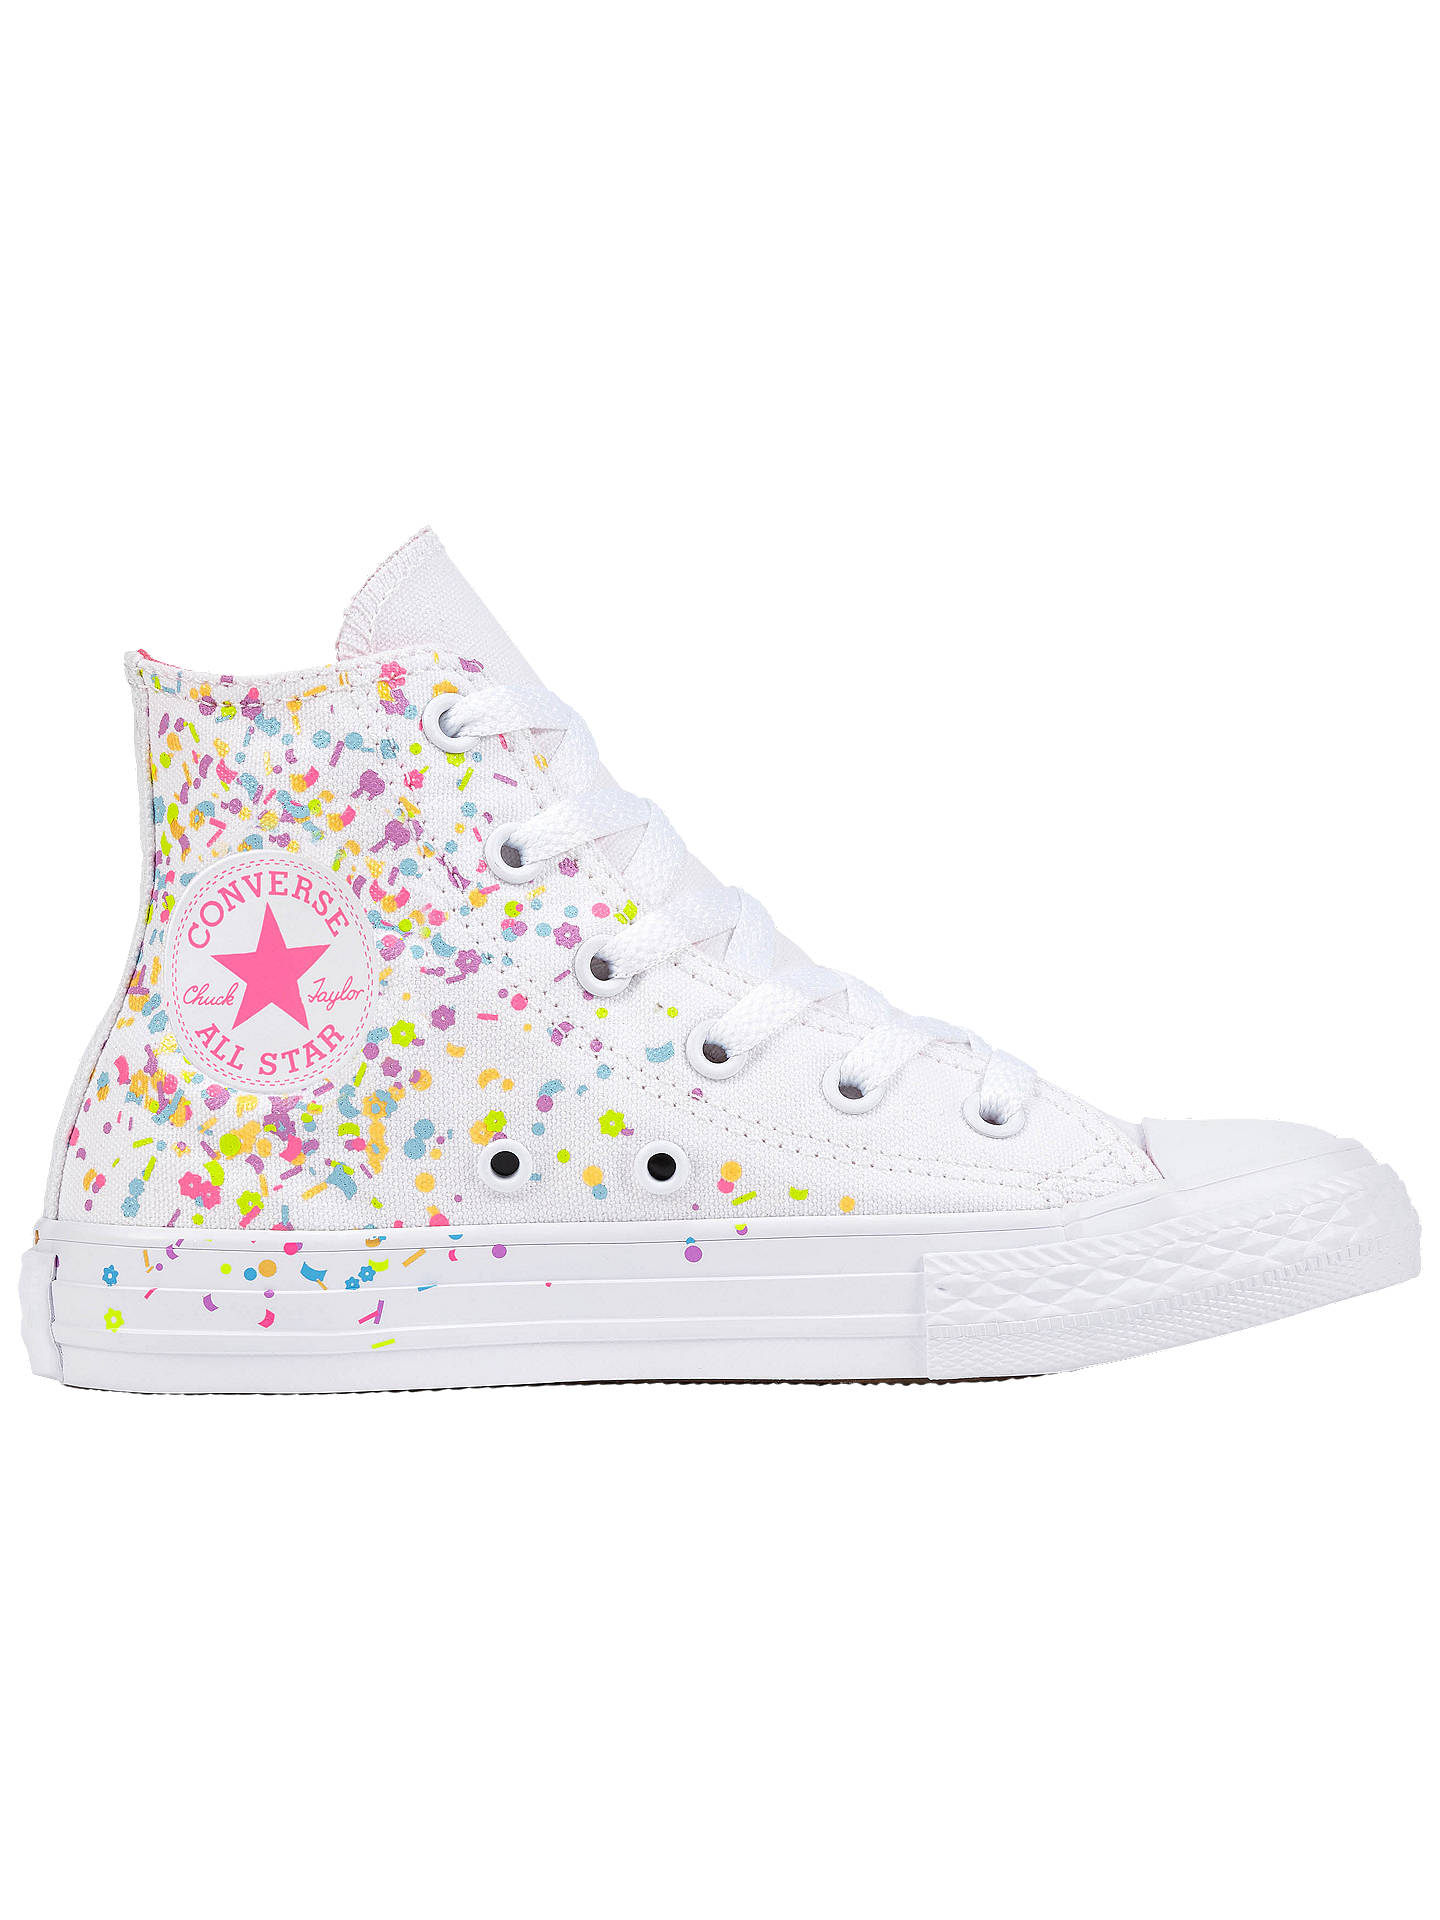 b75fa578a5f9 Buy Converse Chuck Taylor All Star Sprinkles Hi-Top Trainers